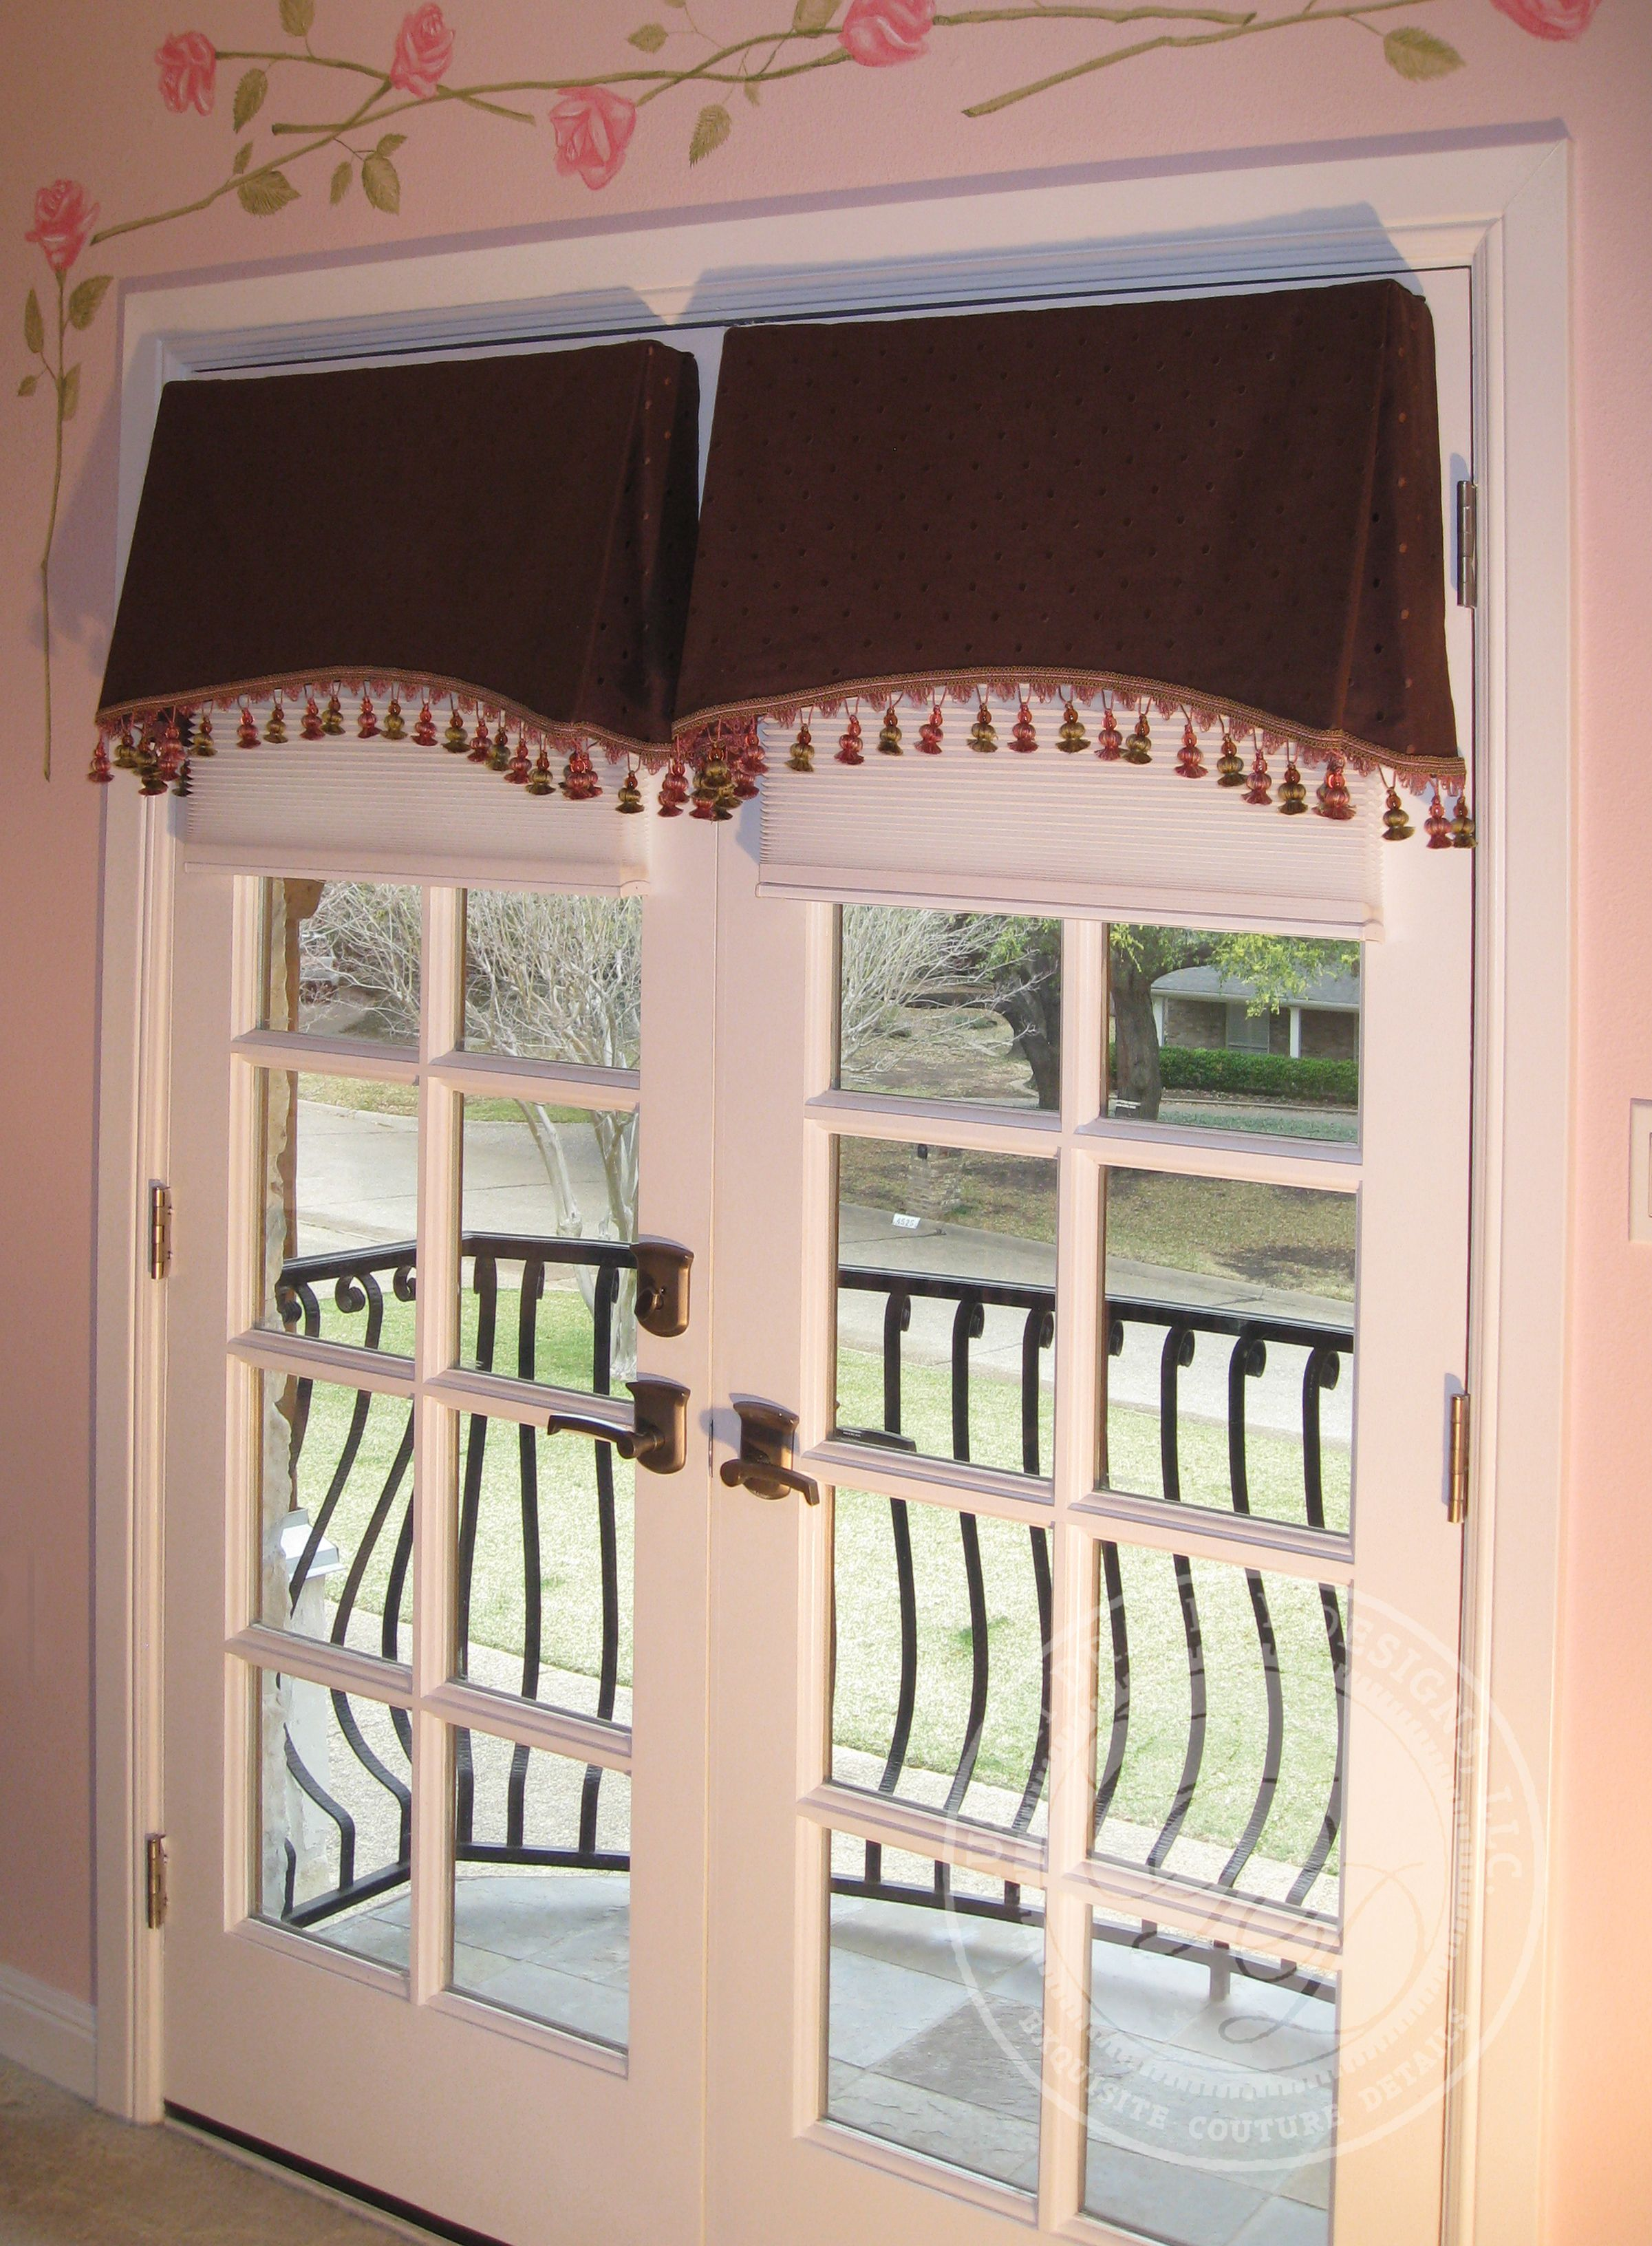 Custom Drapery Designs, LLC. - Valances | Valances | Pinterest ...